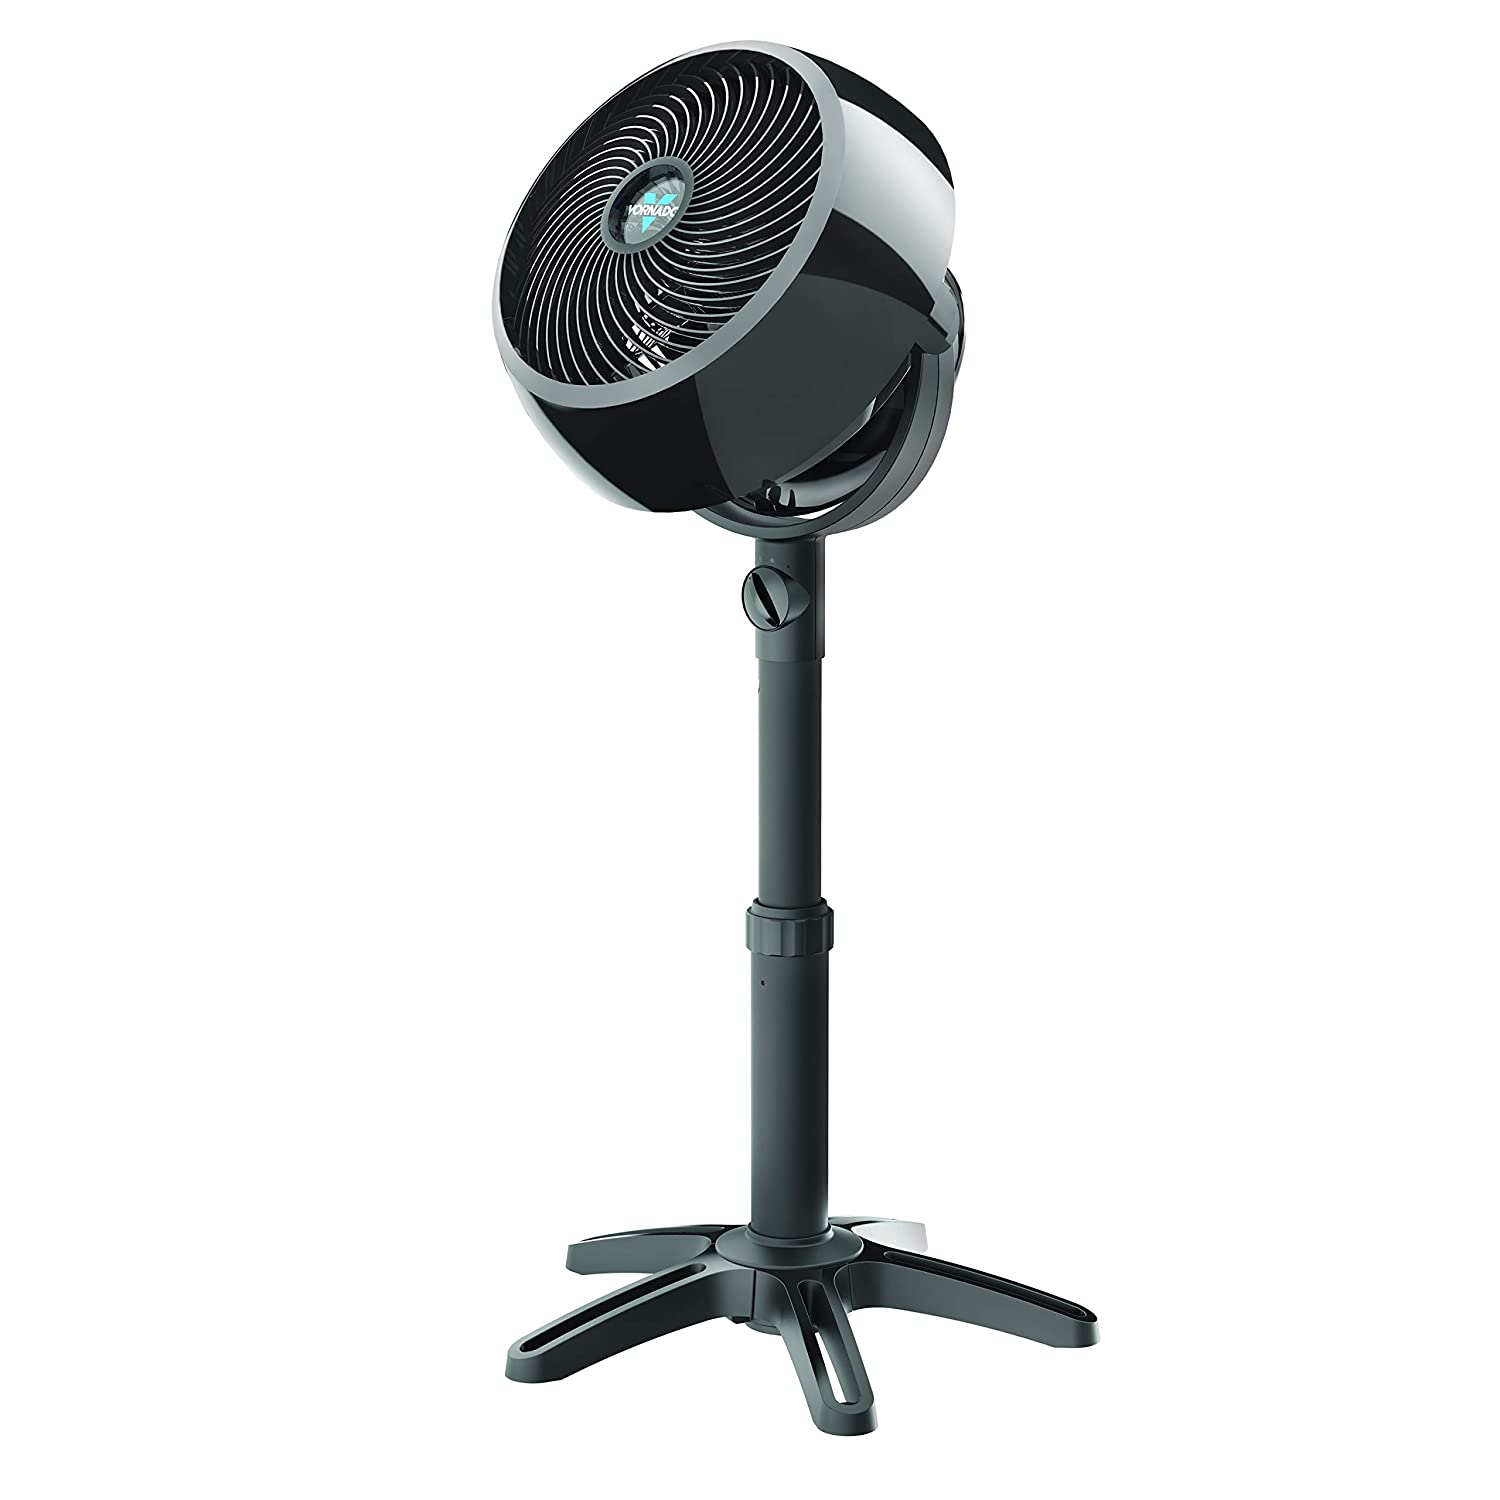 Black 3 Speed Settings Removable Grill for Cleaning Multi-Directional Airflow Vornado 5303 Small Whole Room Air Circulator Fan with Base-Mounted Controls